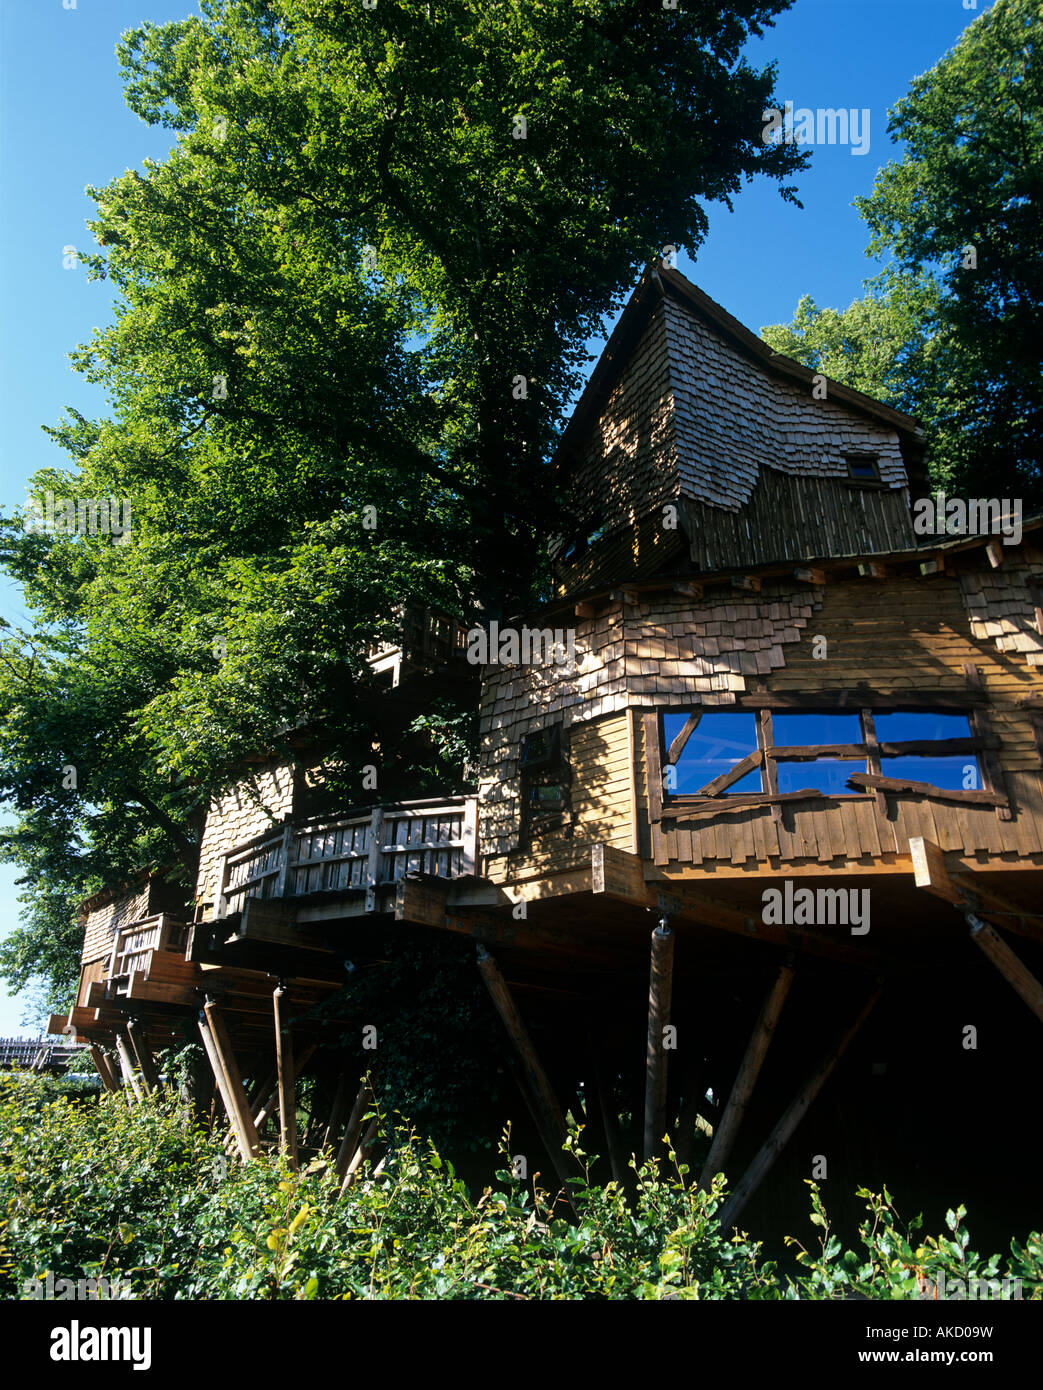 The Worlds Largest Tree House At Alnwick Gardens In Northumberland Stock Photo Alamy